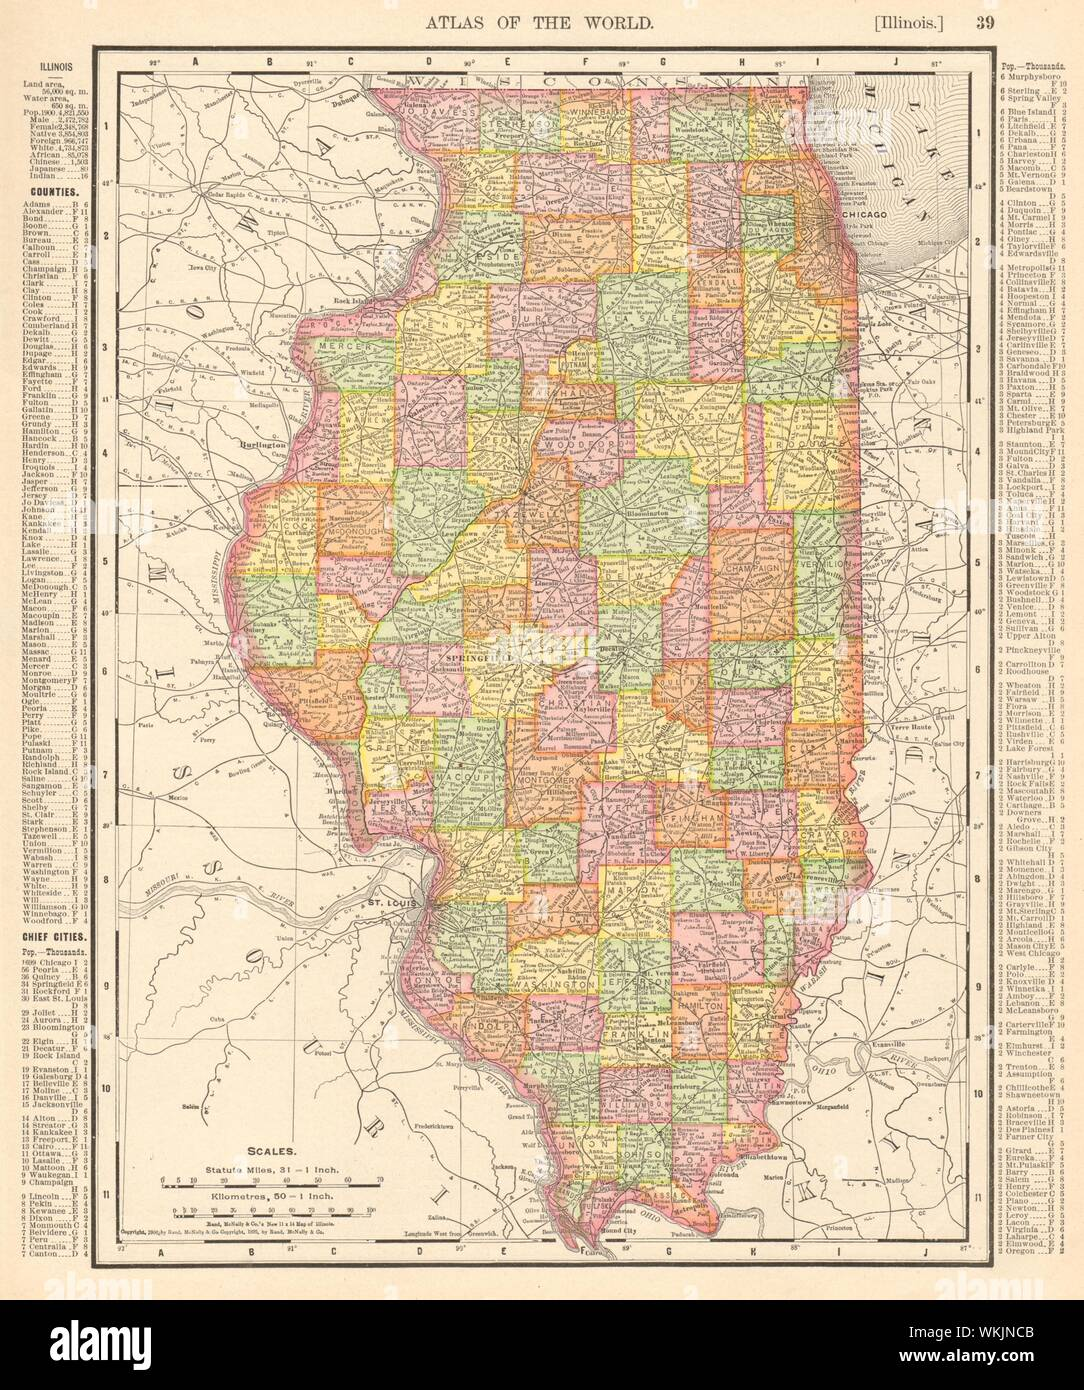 Illinois state map showing counties. RAND MCNALLY 1906 old ... on map of illinois cities, usa road maps with states and cities, illinois and iowa state map, illinois map springfield il, map of tennessee counties and cities, indiana cities, pa cities, midwest map with cities, illinois river map, map of kansas towns and cities, map of maryland counties and cities, chicago and surrounding cities, west virginia map counties and cities, us interstate highway map with cities, illinois map with all cities, rockford illinois map with cities, illinois streator il map, map of europe with capital cities, il state map with cities, map of ca cities,